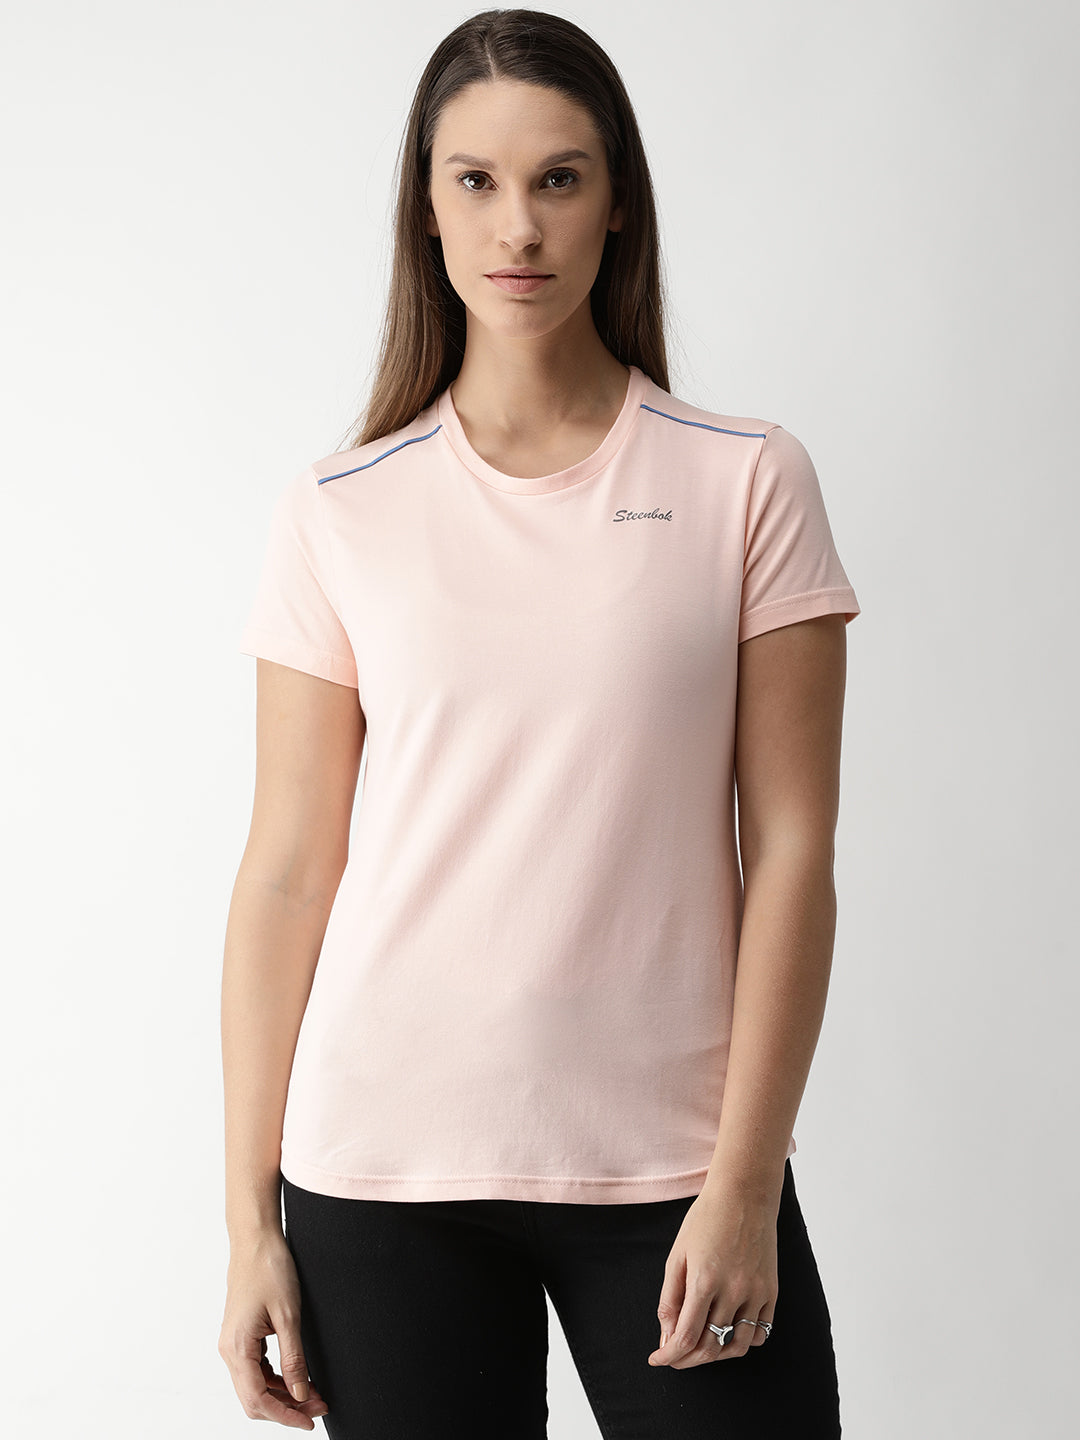 Women's Cotton candy Odour-Free Crew Neck T-Shirt